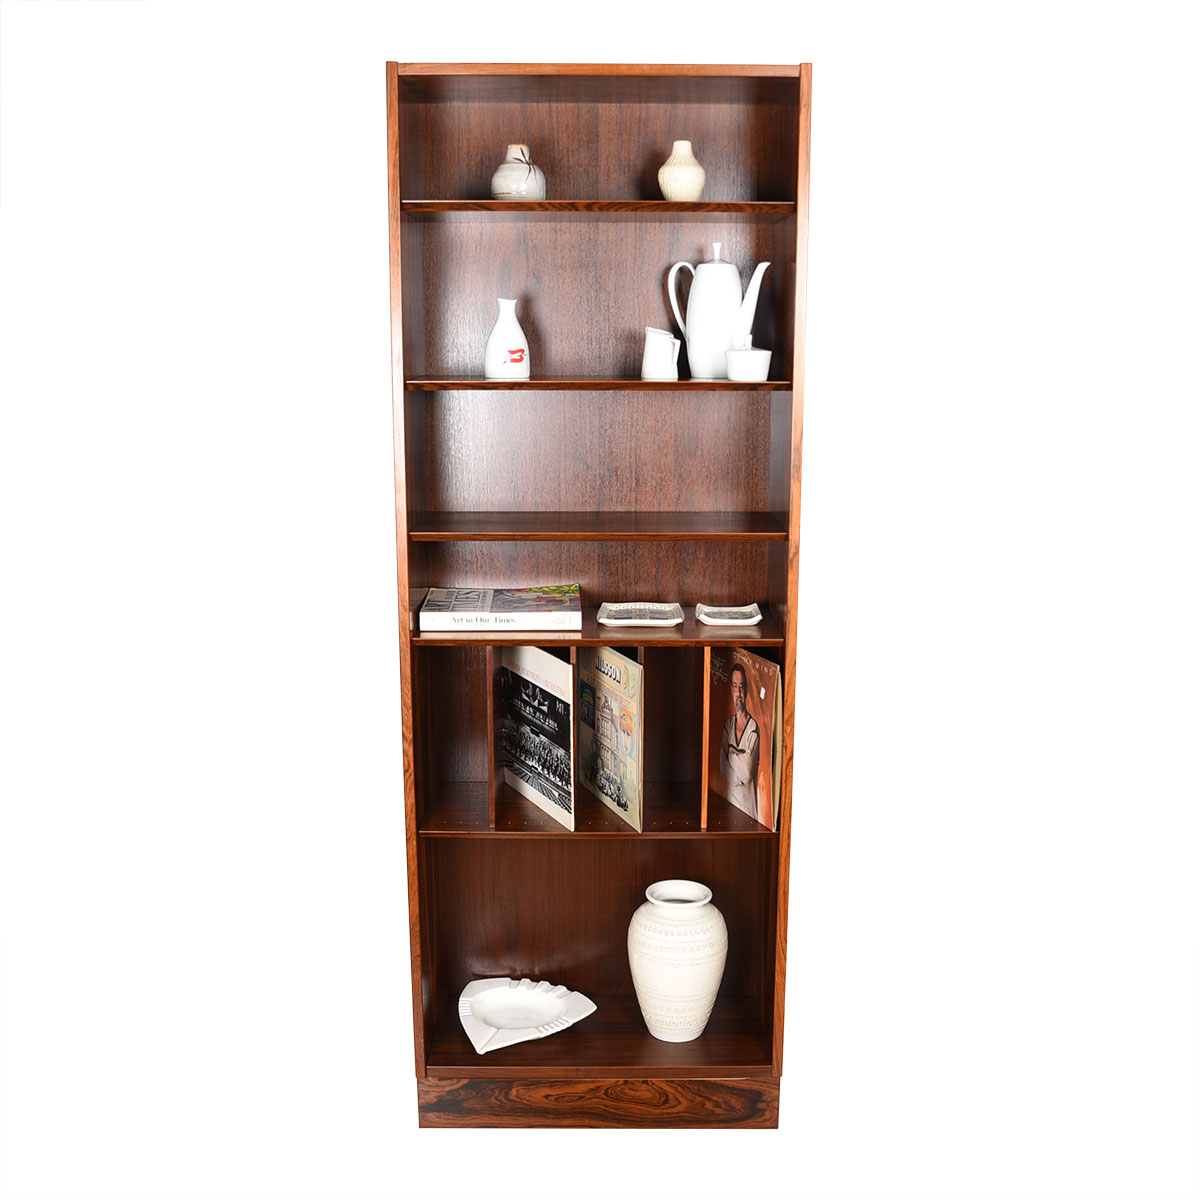 Danish Rosewood Compact 28″ Bookcase w/ Adjustable Shelves & Dividers